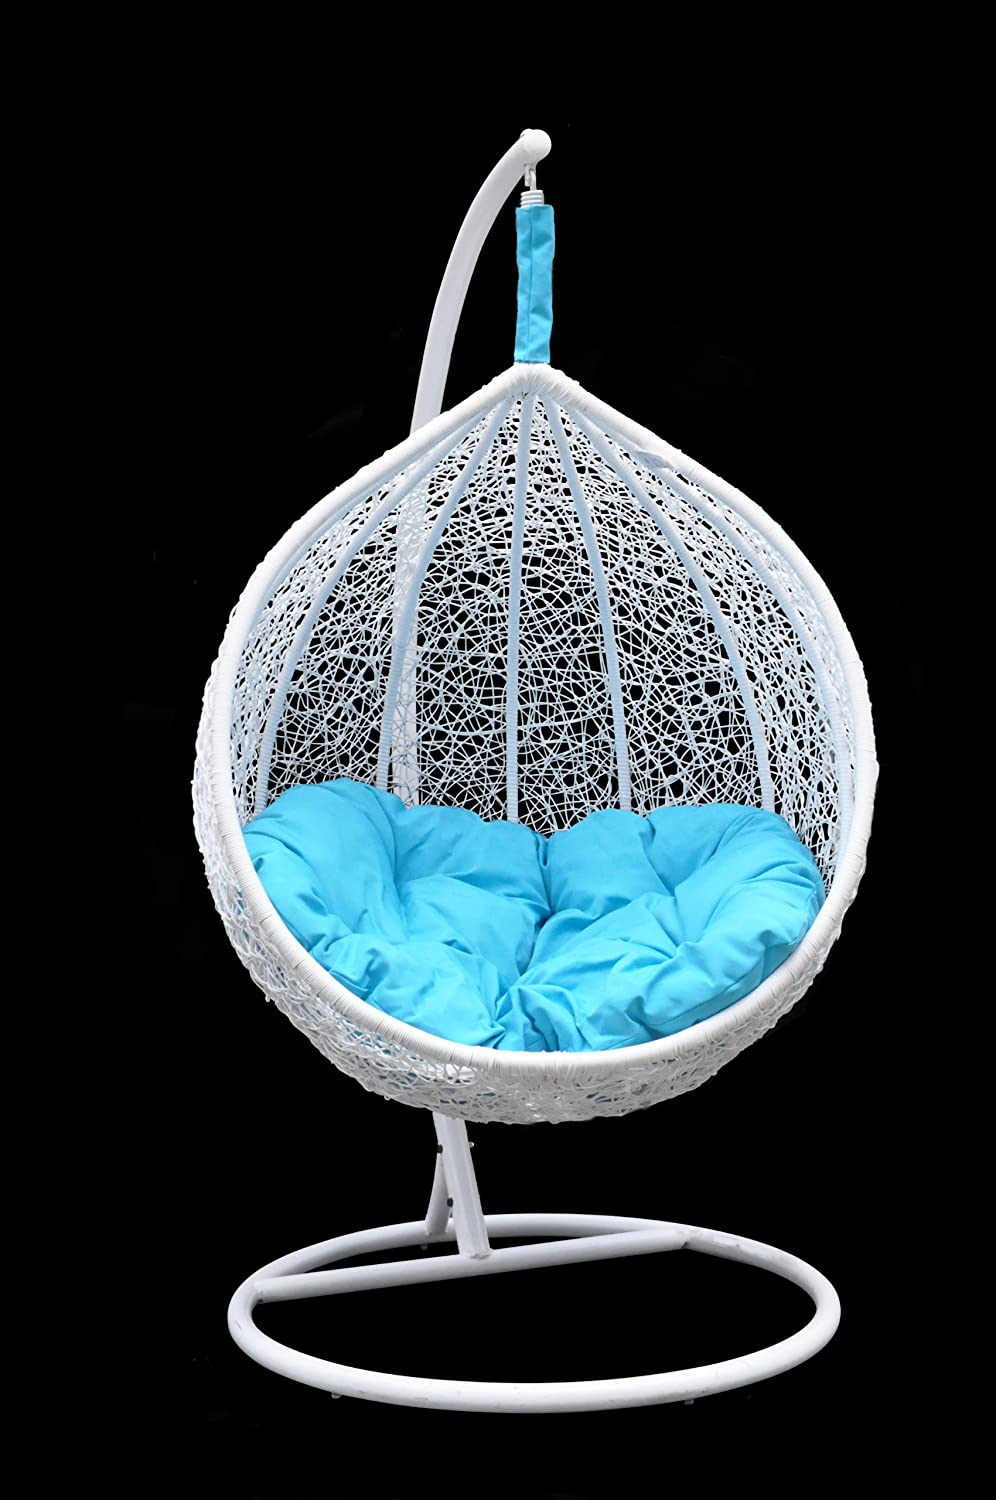 Amazon.com : Ceri   Vibrant Outdoor Swing Chair Great Hammocks   Model    CW003 WT : Hanging Chair : Garden U0026 Outdoor